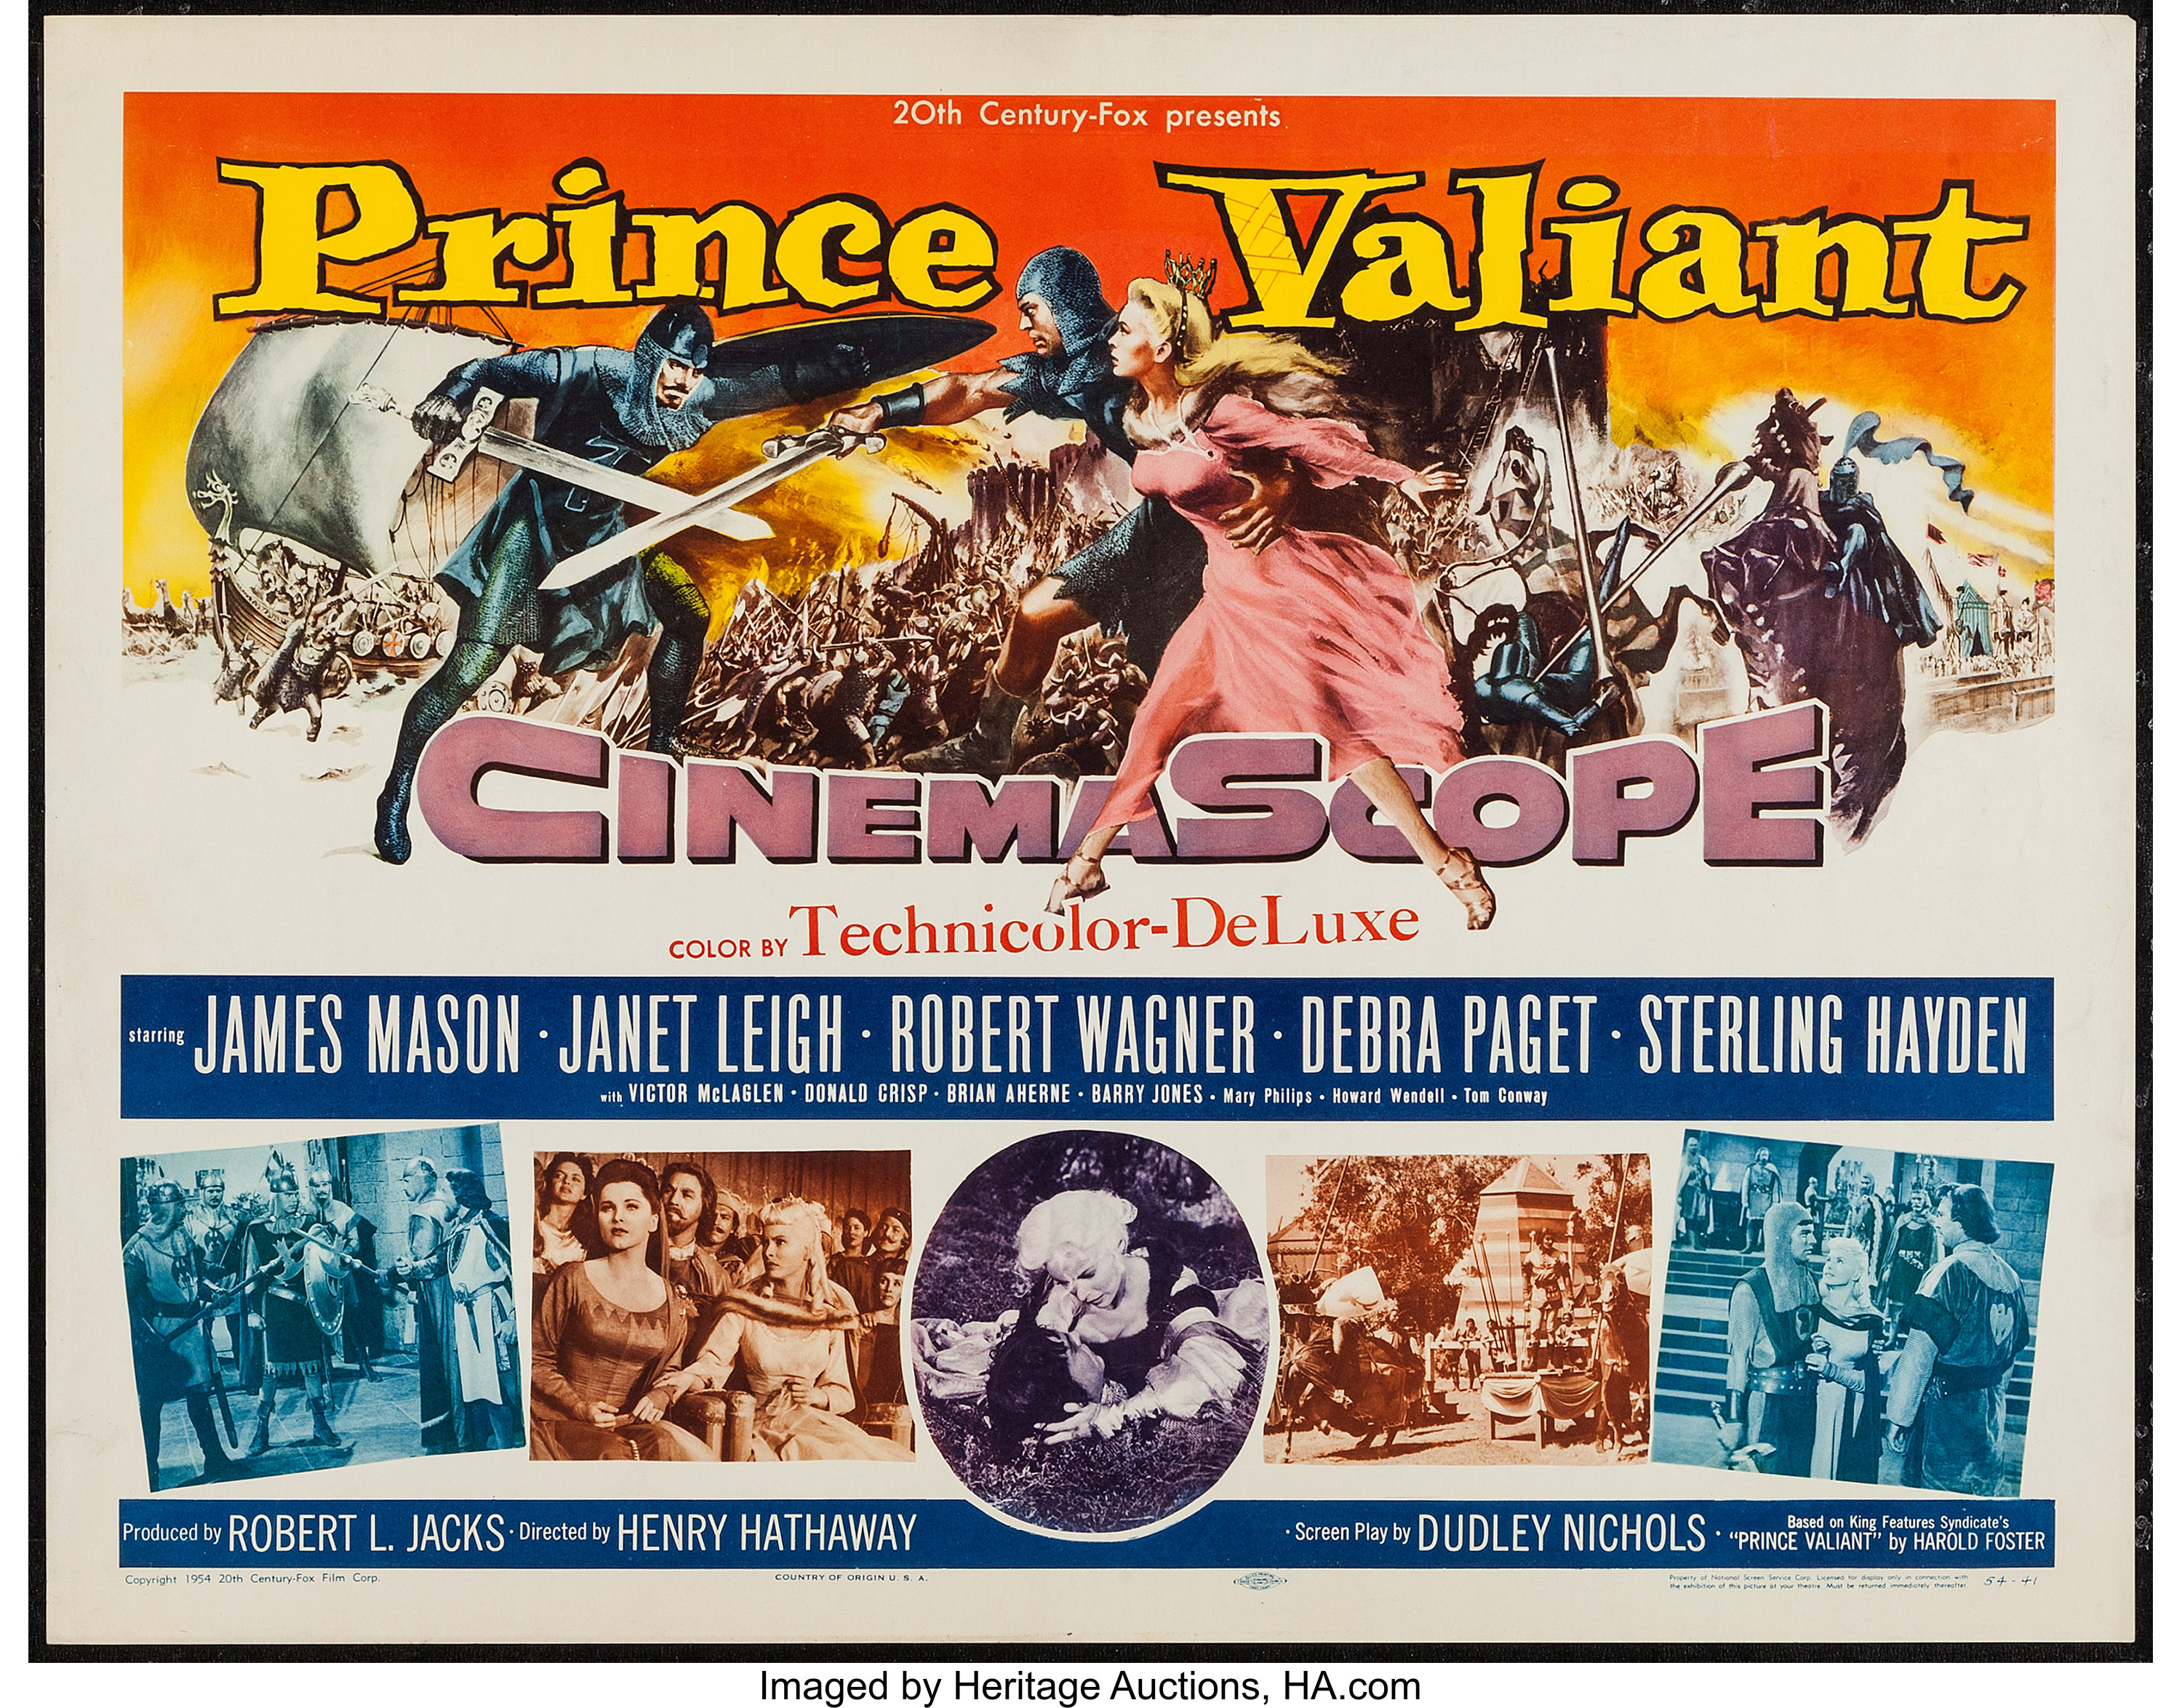 Prince Valiant James Mason Janet Leigh movie poster print 2